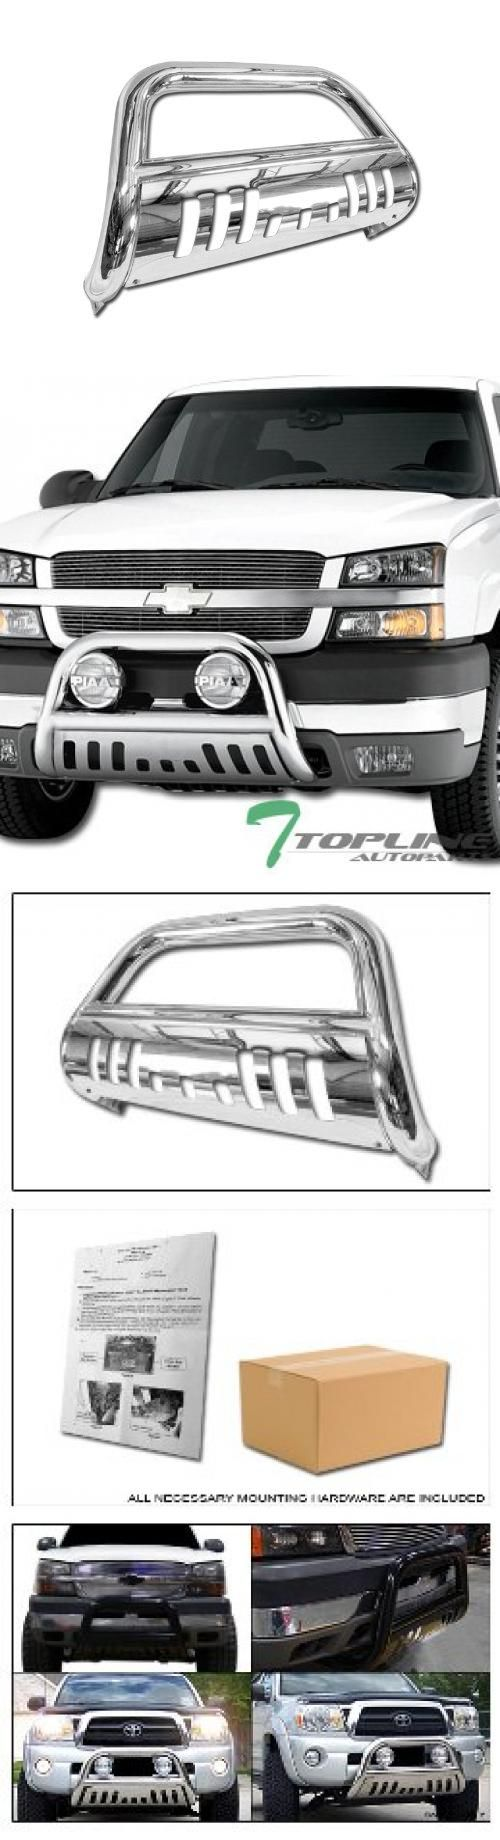 Stainless Bull Bar(Brush Push Bumper Grill Guard) Fits: 2001-2006 Chevy Silverado & GMC Sierra 1500 HD / 2500 HD / 3500 Model , 2007 Chevy Silverado & GMC Sierra 1500 HD / 2500 HD / 3500 Classic Model Only , 1999-2004 Chevy Silverado & GMC Sierra 2500 LD Model Only , 2002-2006 Chevy Avalanche 2500 ( With Or Without Cladding Models ) , 2000-2006 Chevy Suburban 2500 Model Only , 2000-2006 GMC Yukon ... #Topline_autopart #Automotive_Parts_and_Accessories